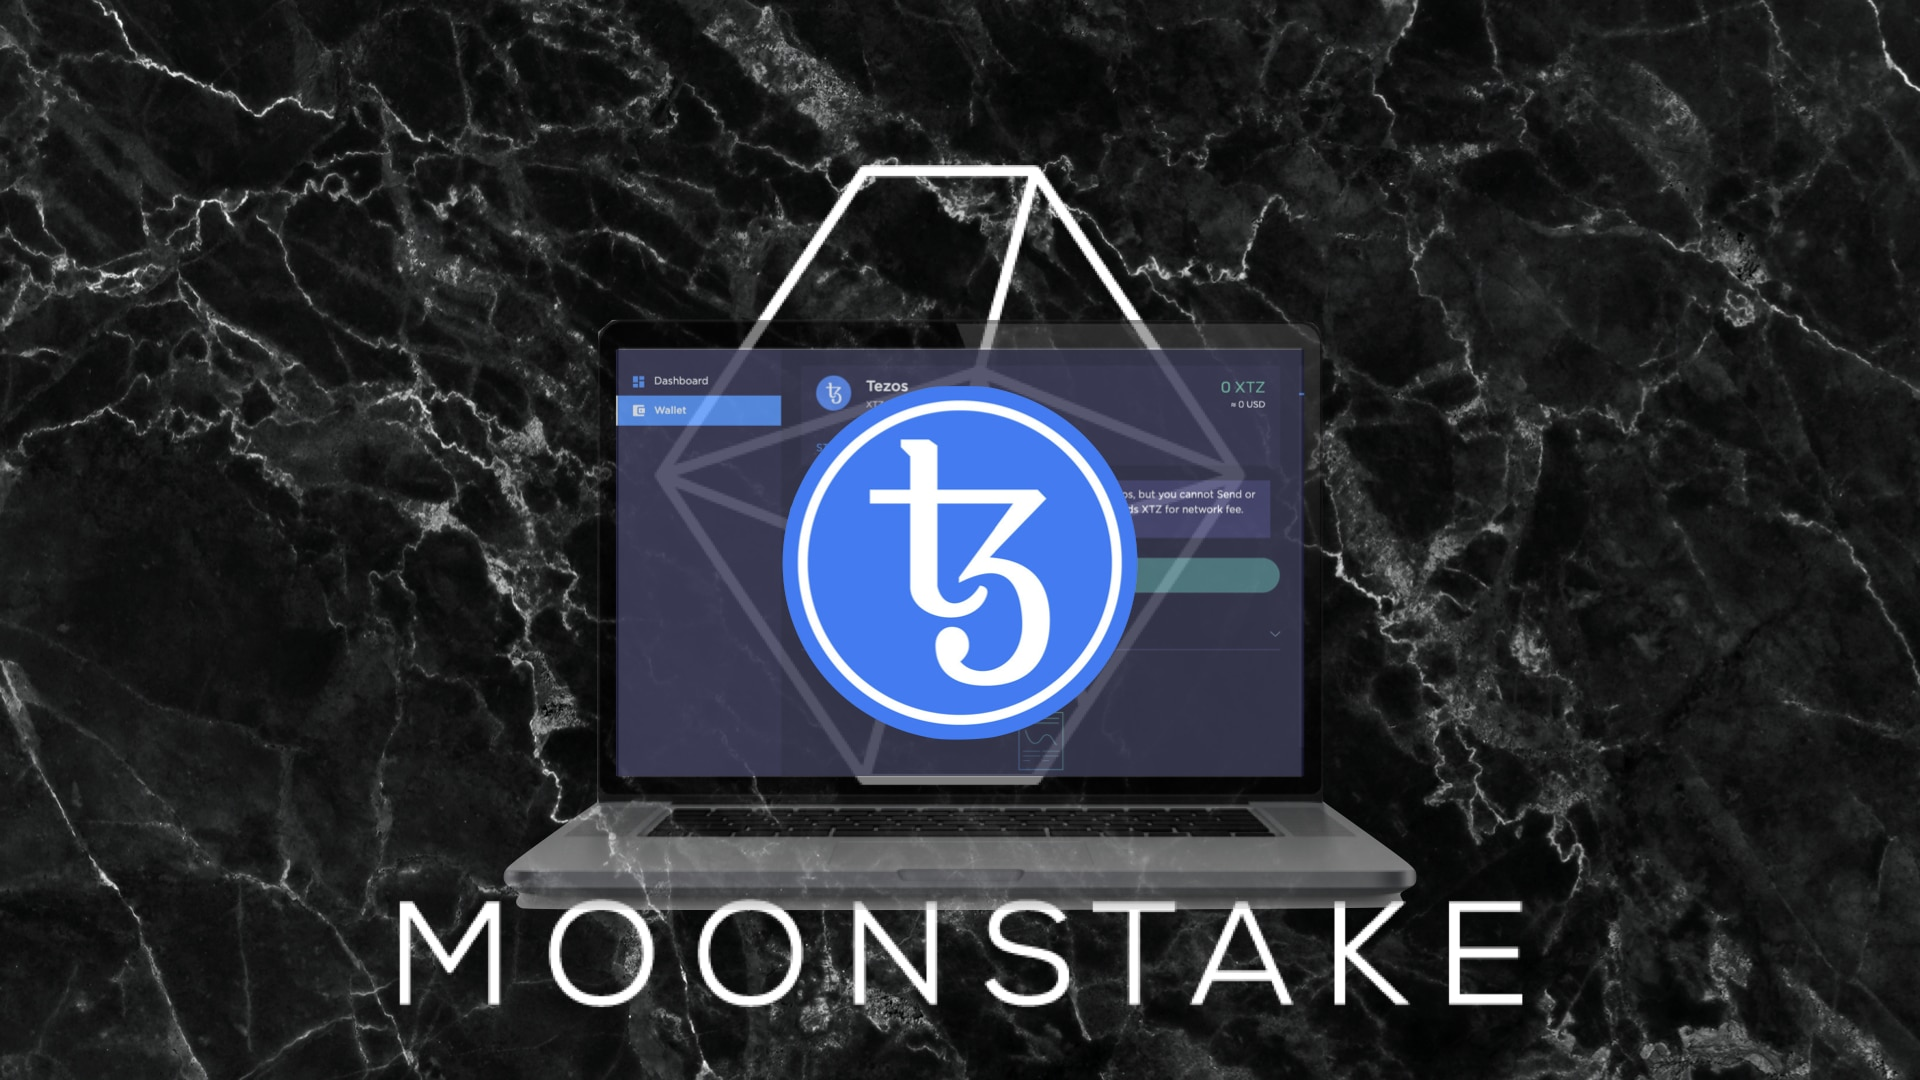 Moonstake partners with Tezos to increase adoption of staking